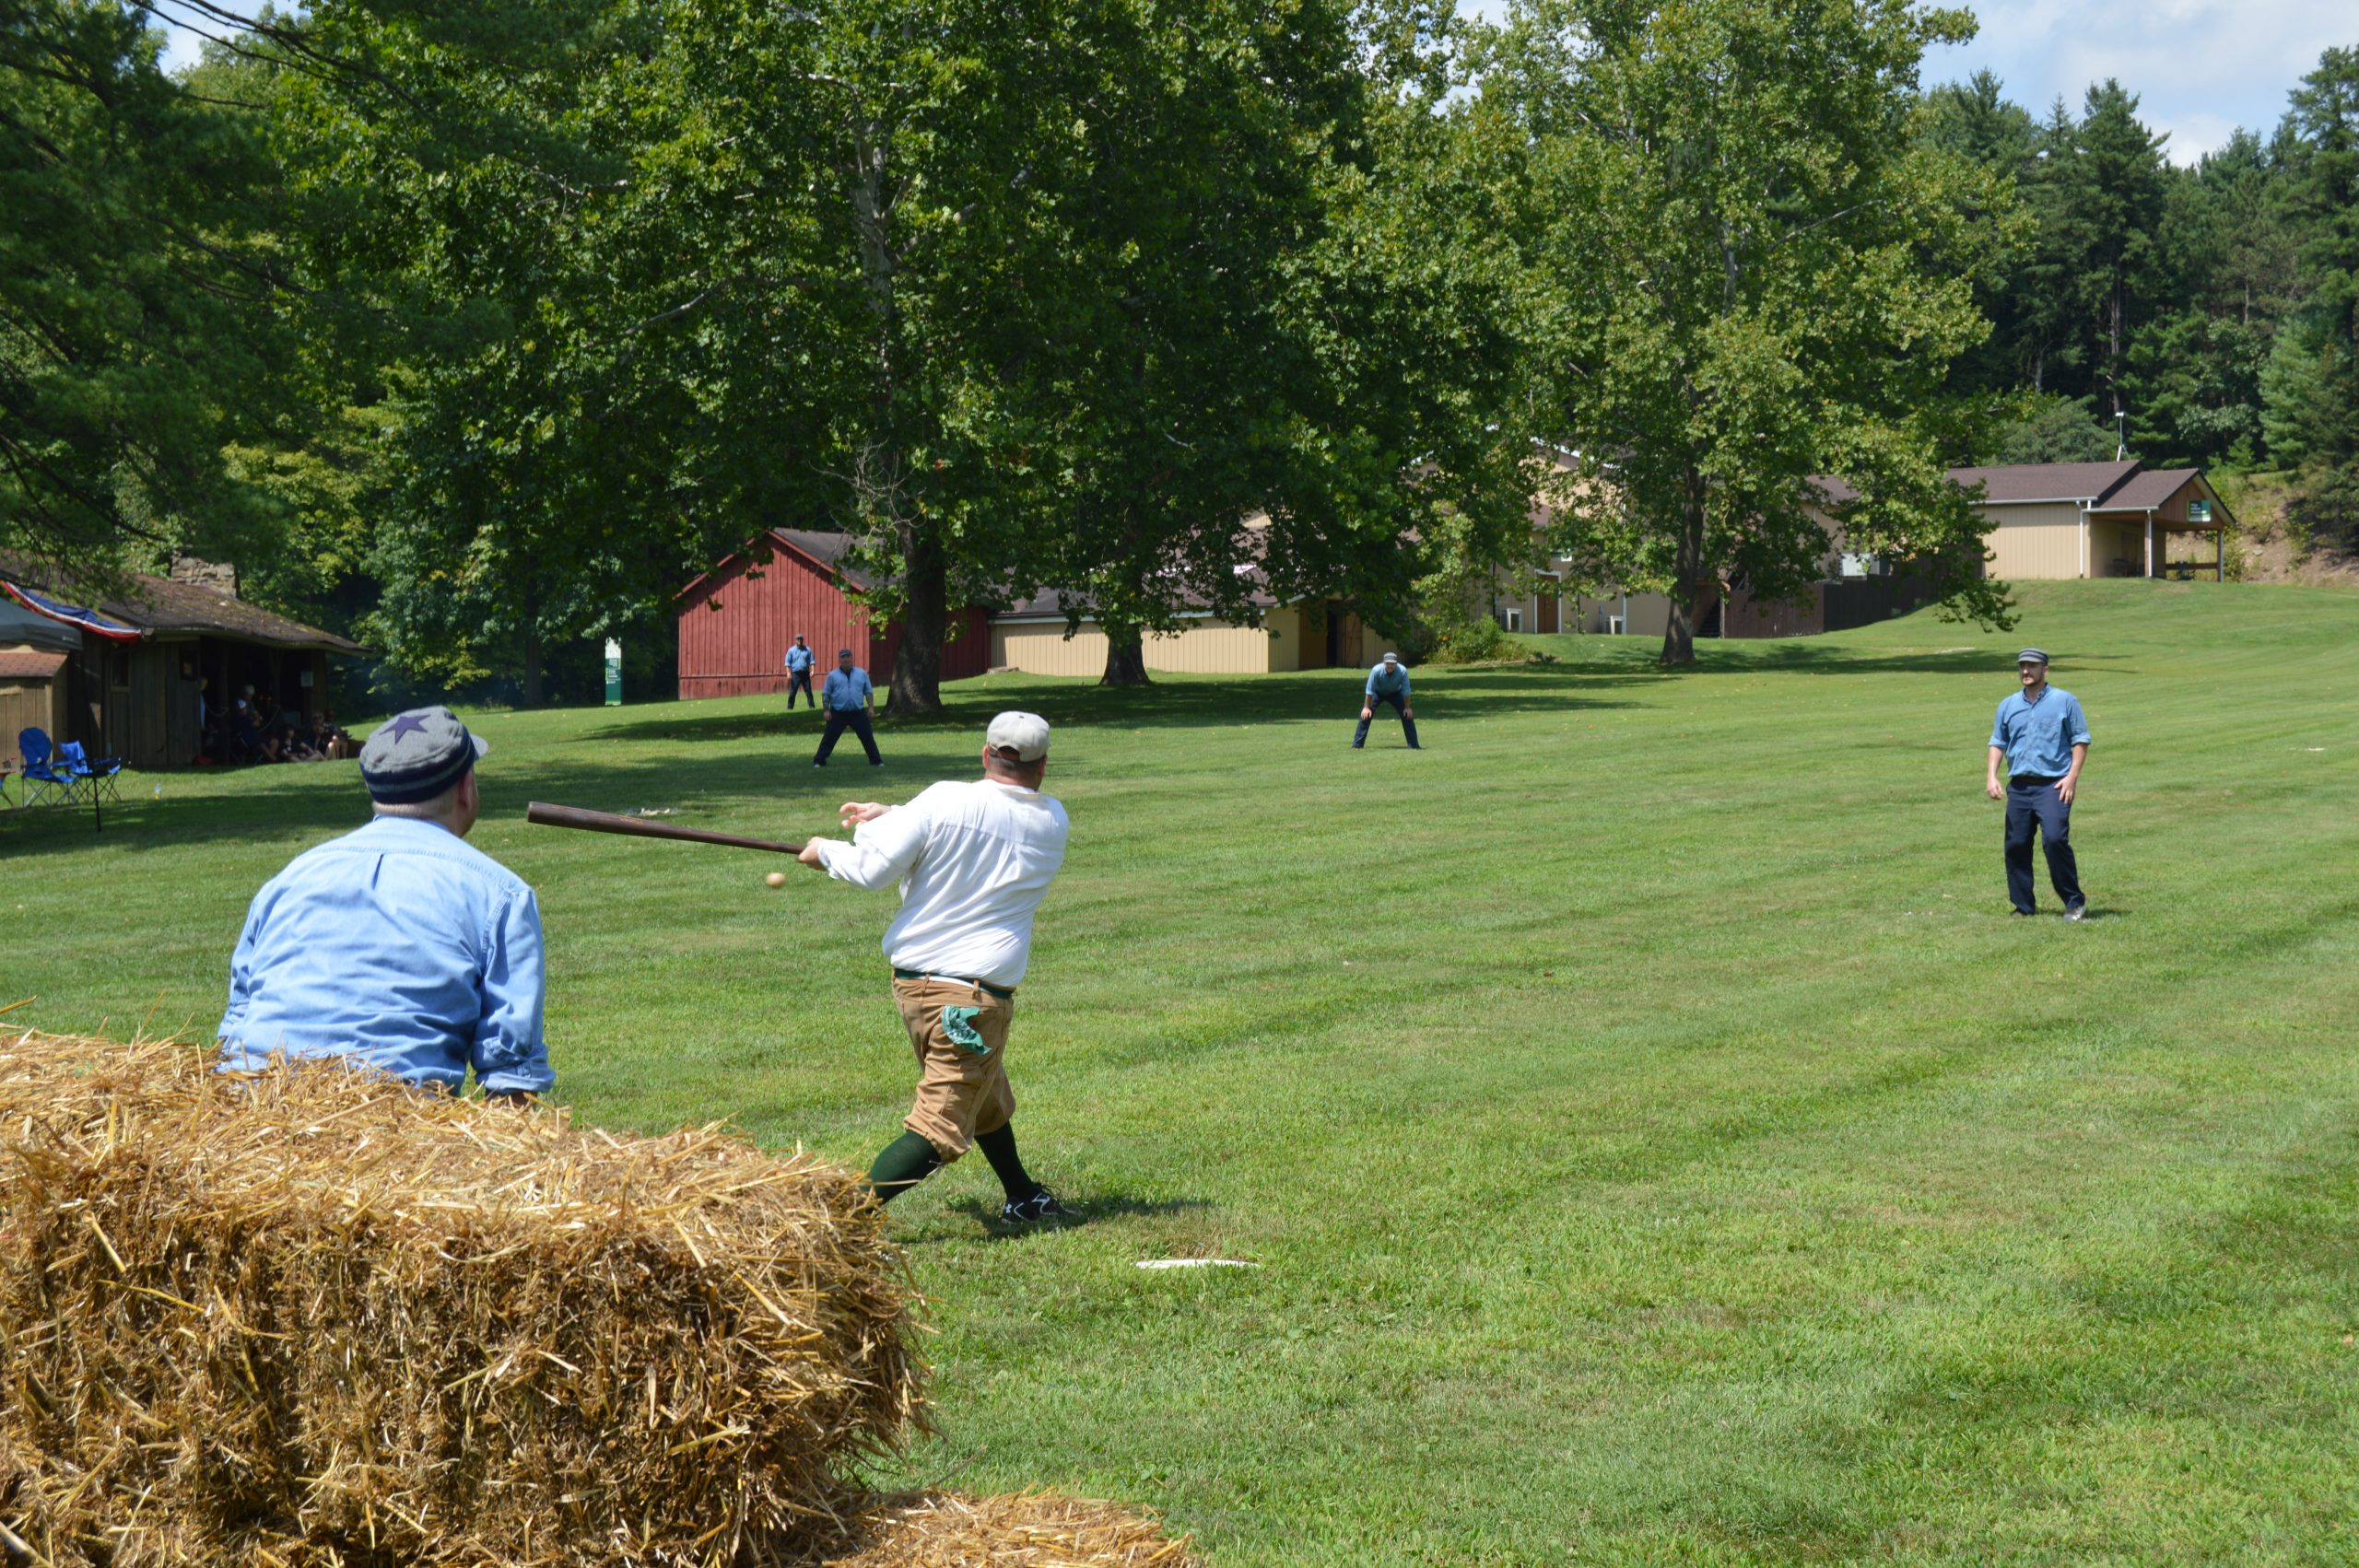 A game of vintage base ball is played at Meadowcroft Rockshelter and Historic Village.